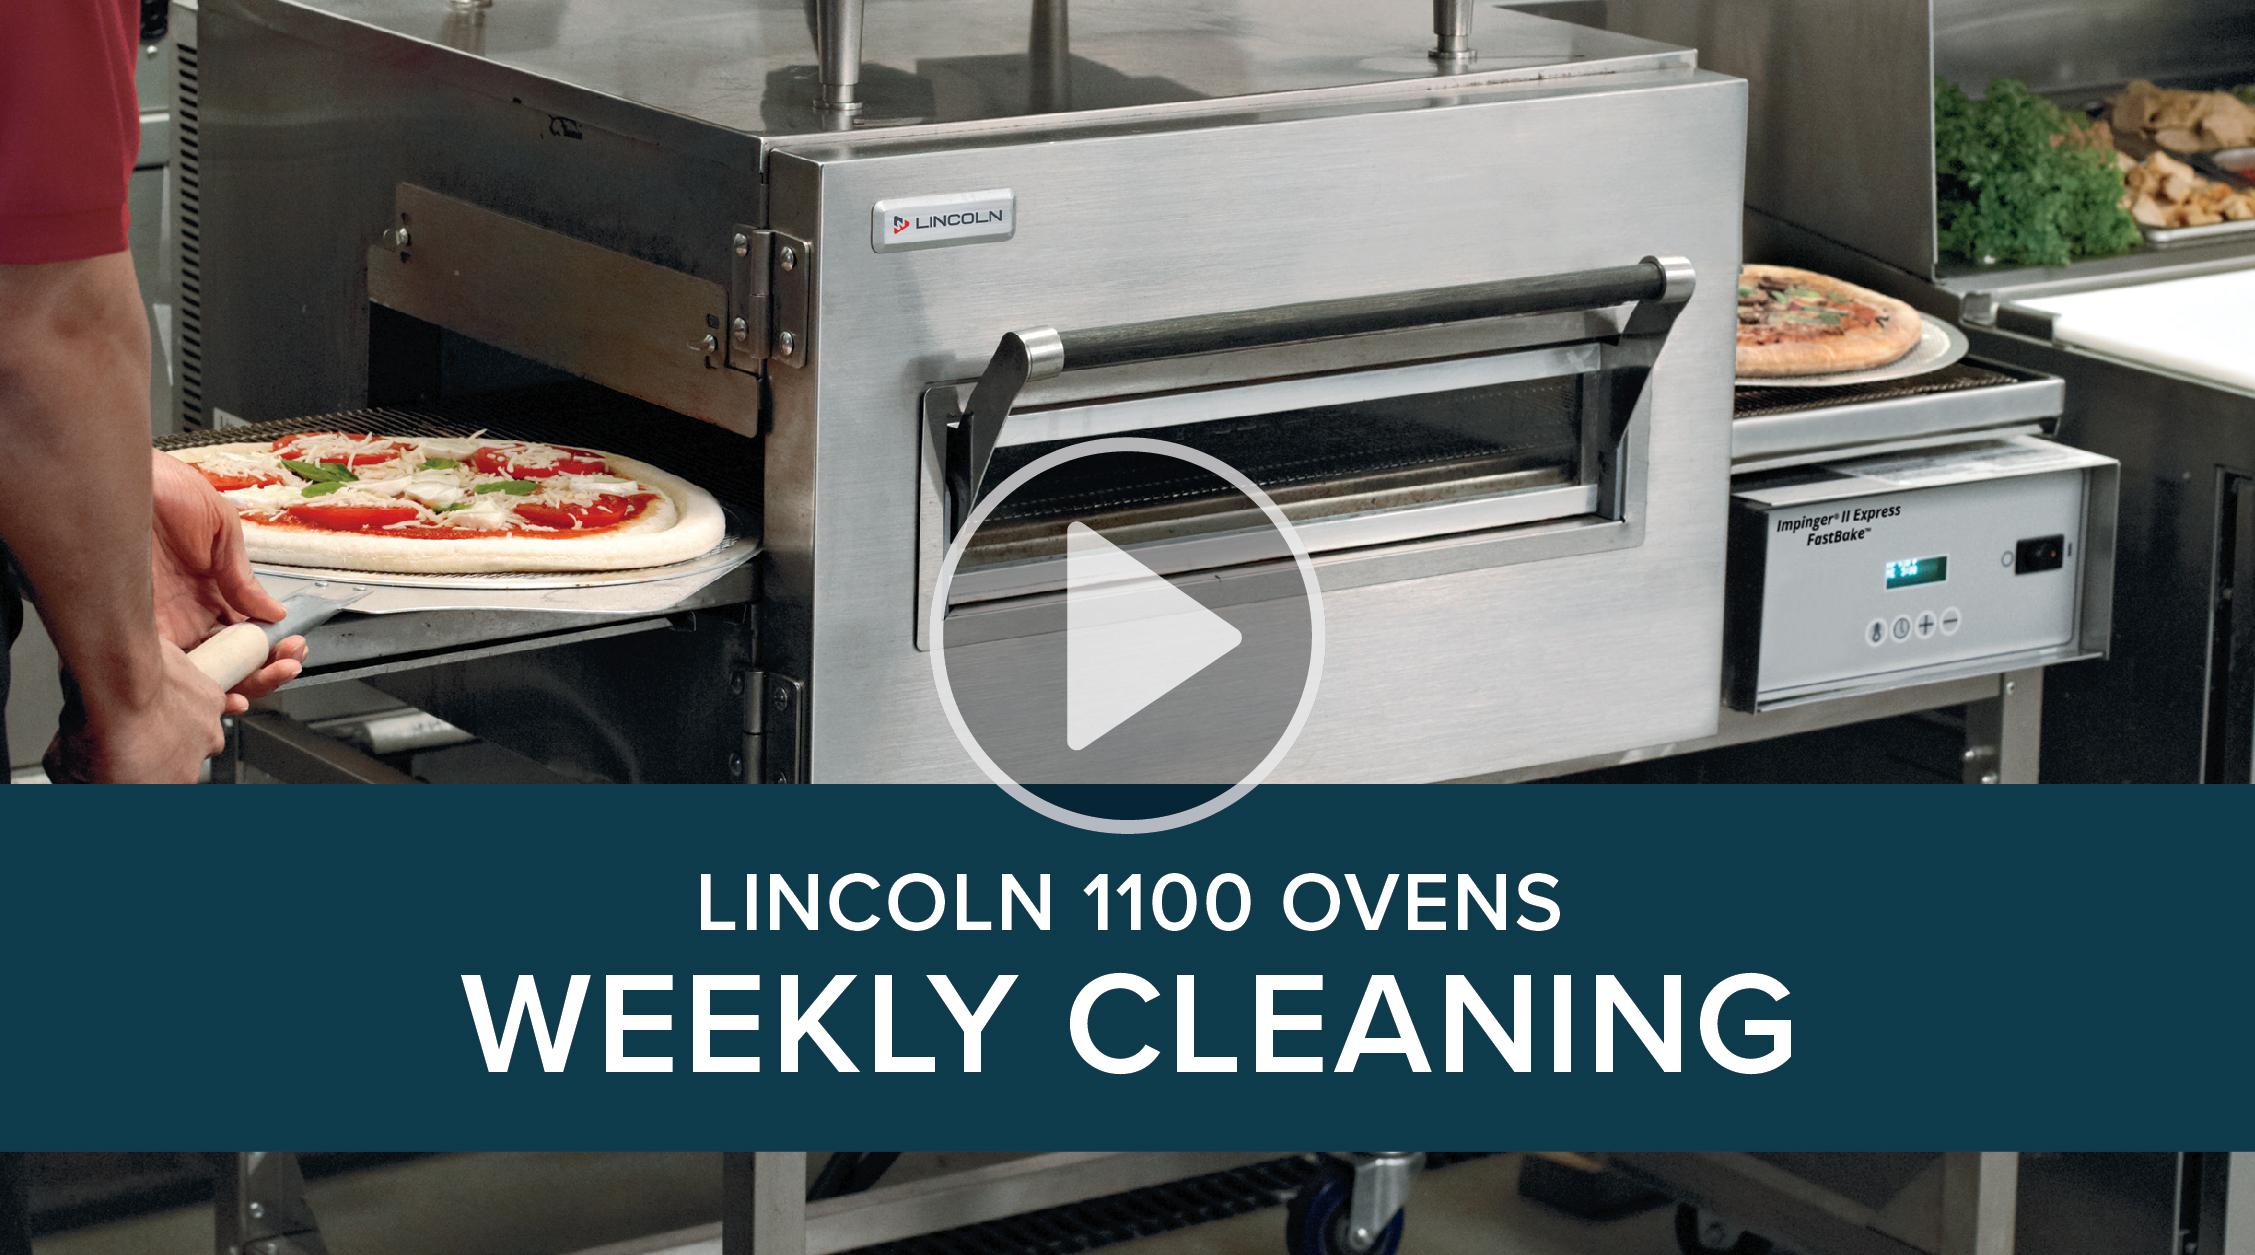 Weekly Cleaning Lincoln 1100